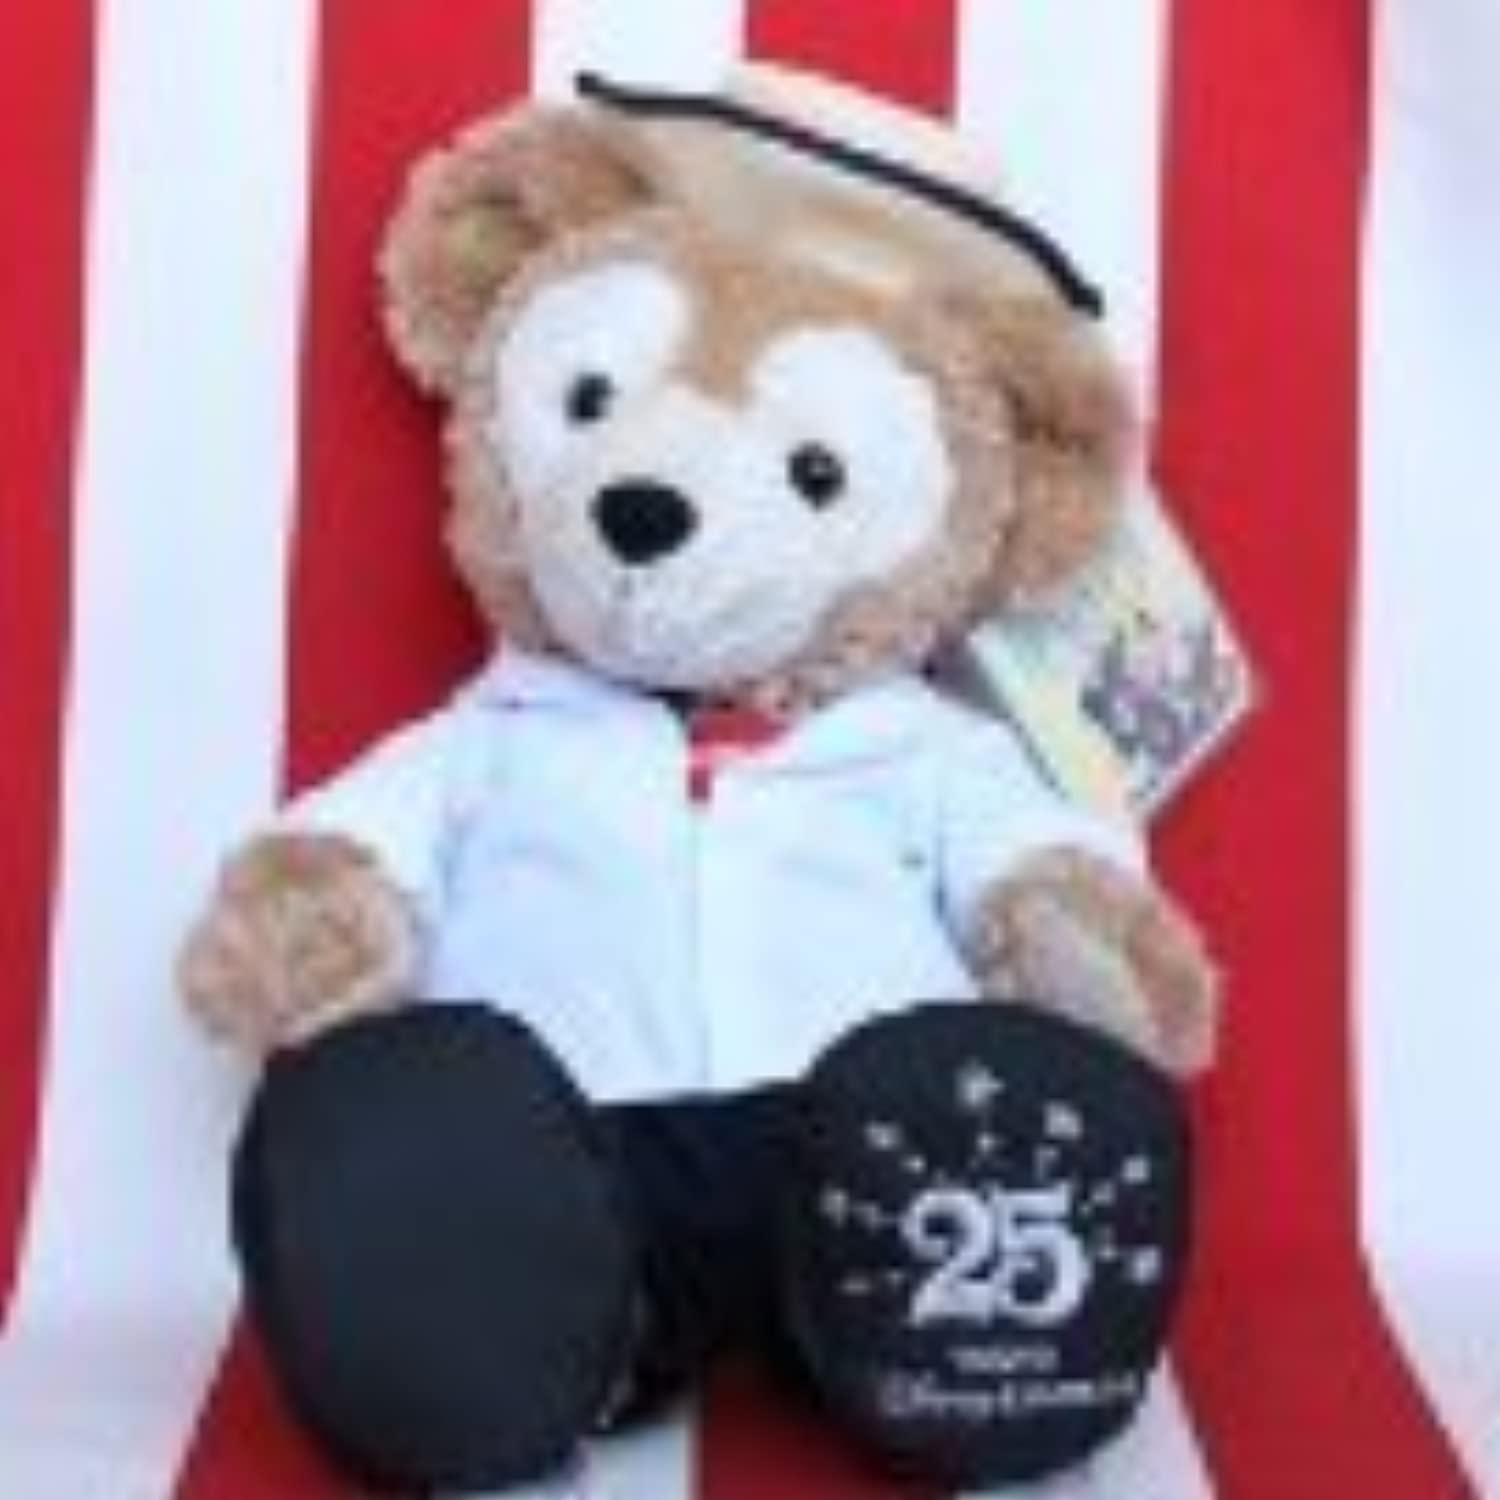 Duffy Duffy 25 Anniversary LimitedキャストコスチュームGon de理恵コスチュームセット